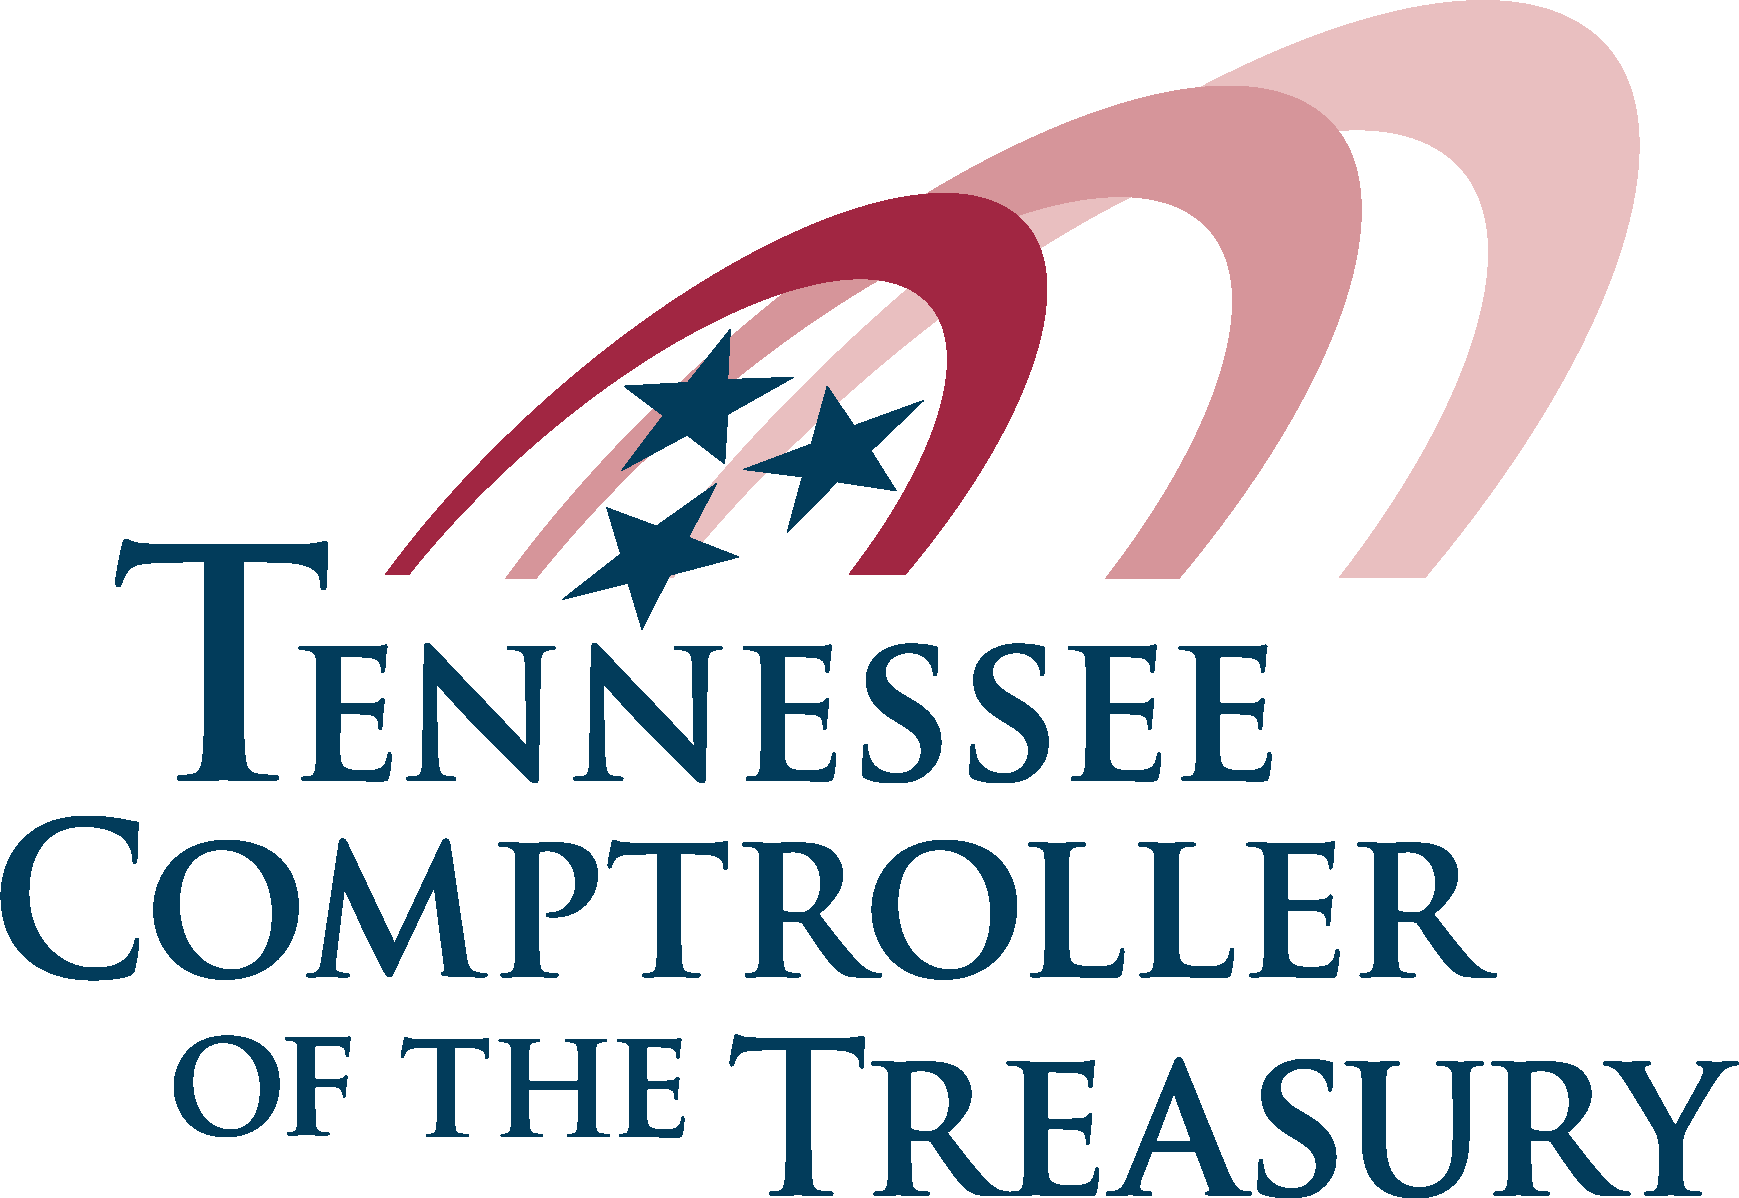 Tennessee Comptroller of the Treasury logo